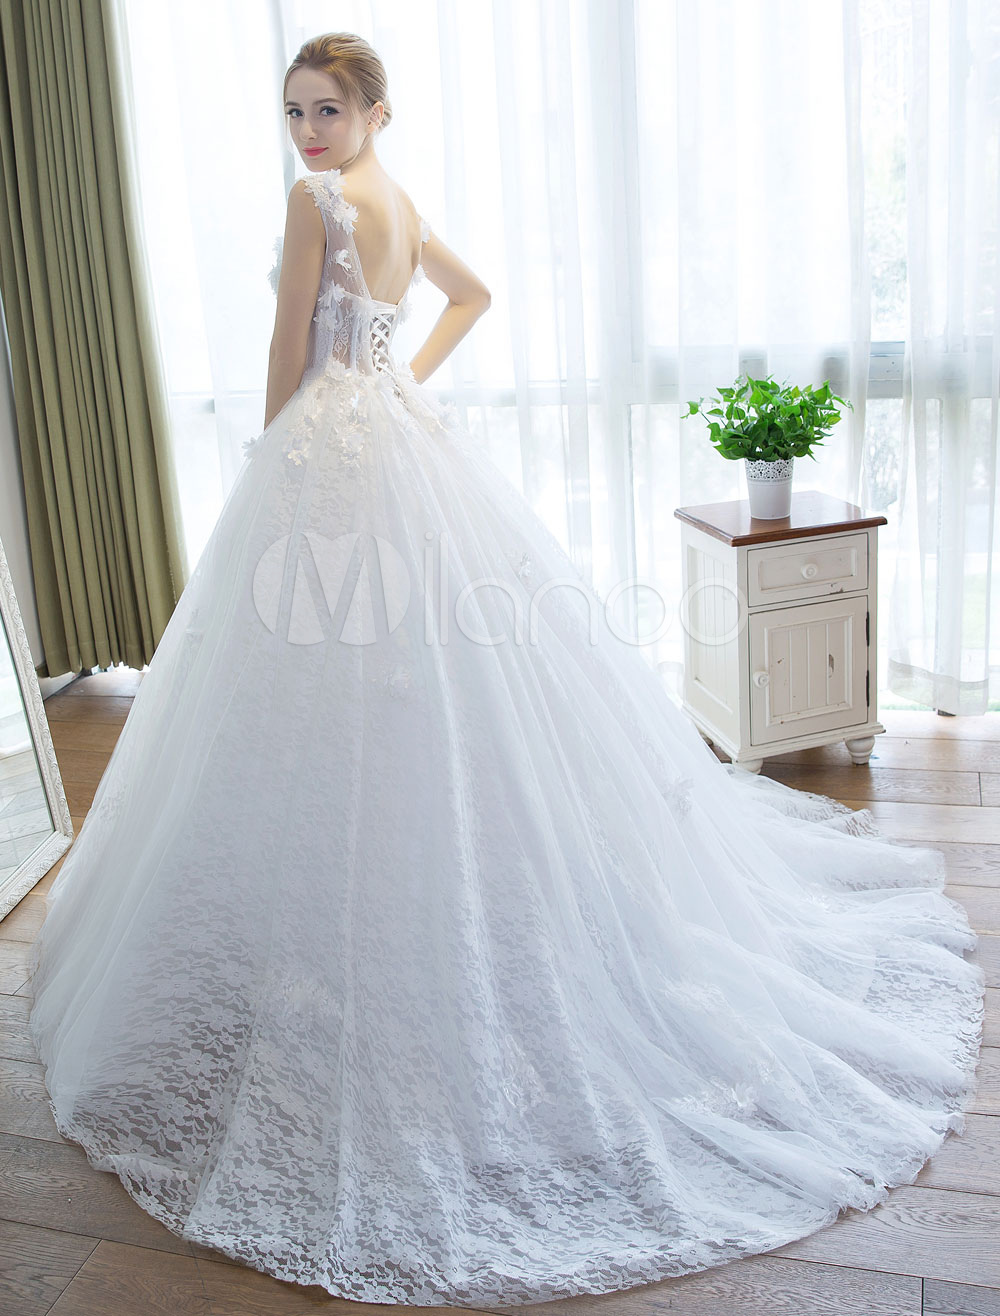 Wedding Dresses Princess Ball Gown Ivory Bridal Gown V Neck Illusion ...